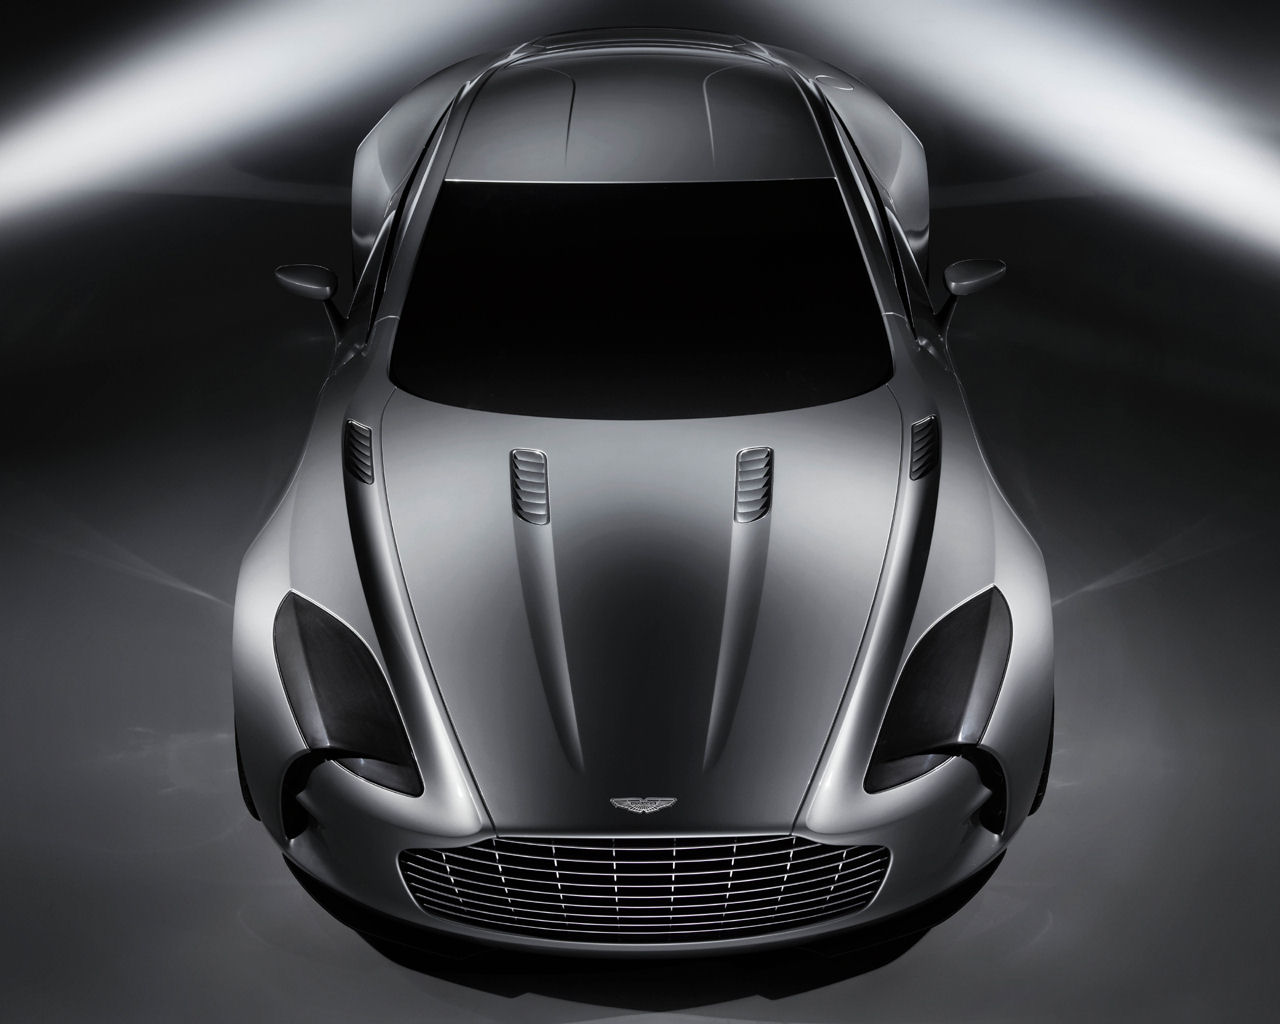 Aston Martin One 77 Free 1280x1024 Wallpaper Desktop